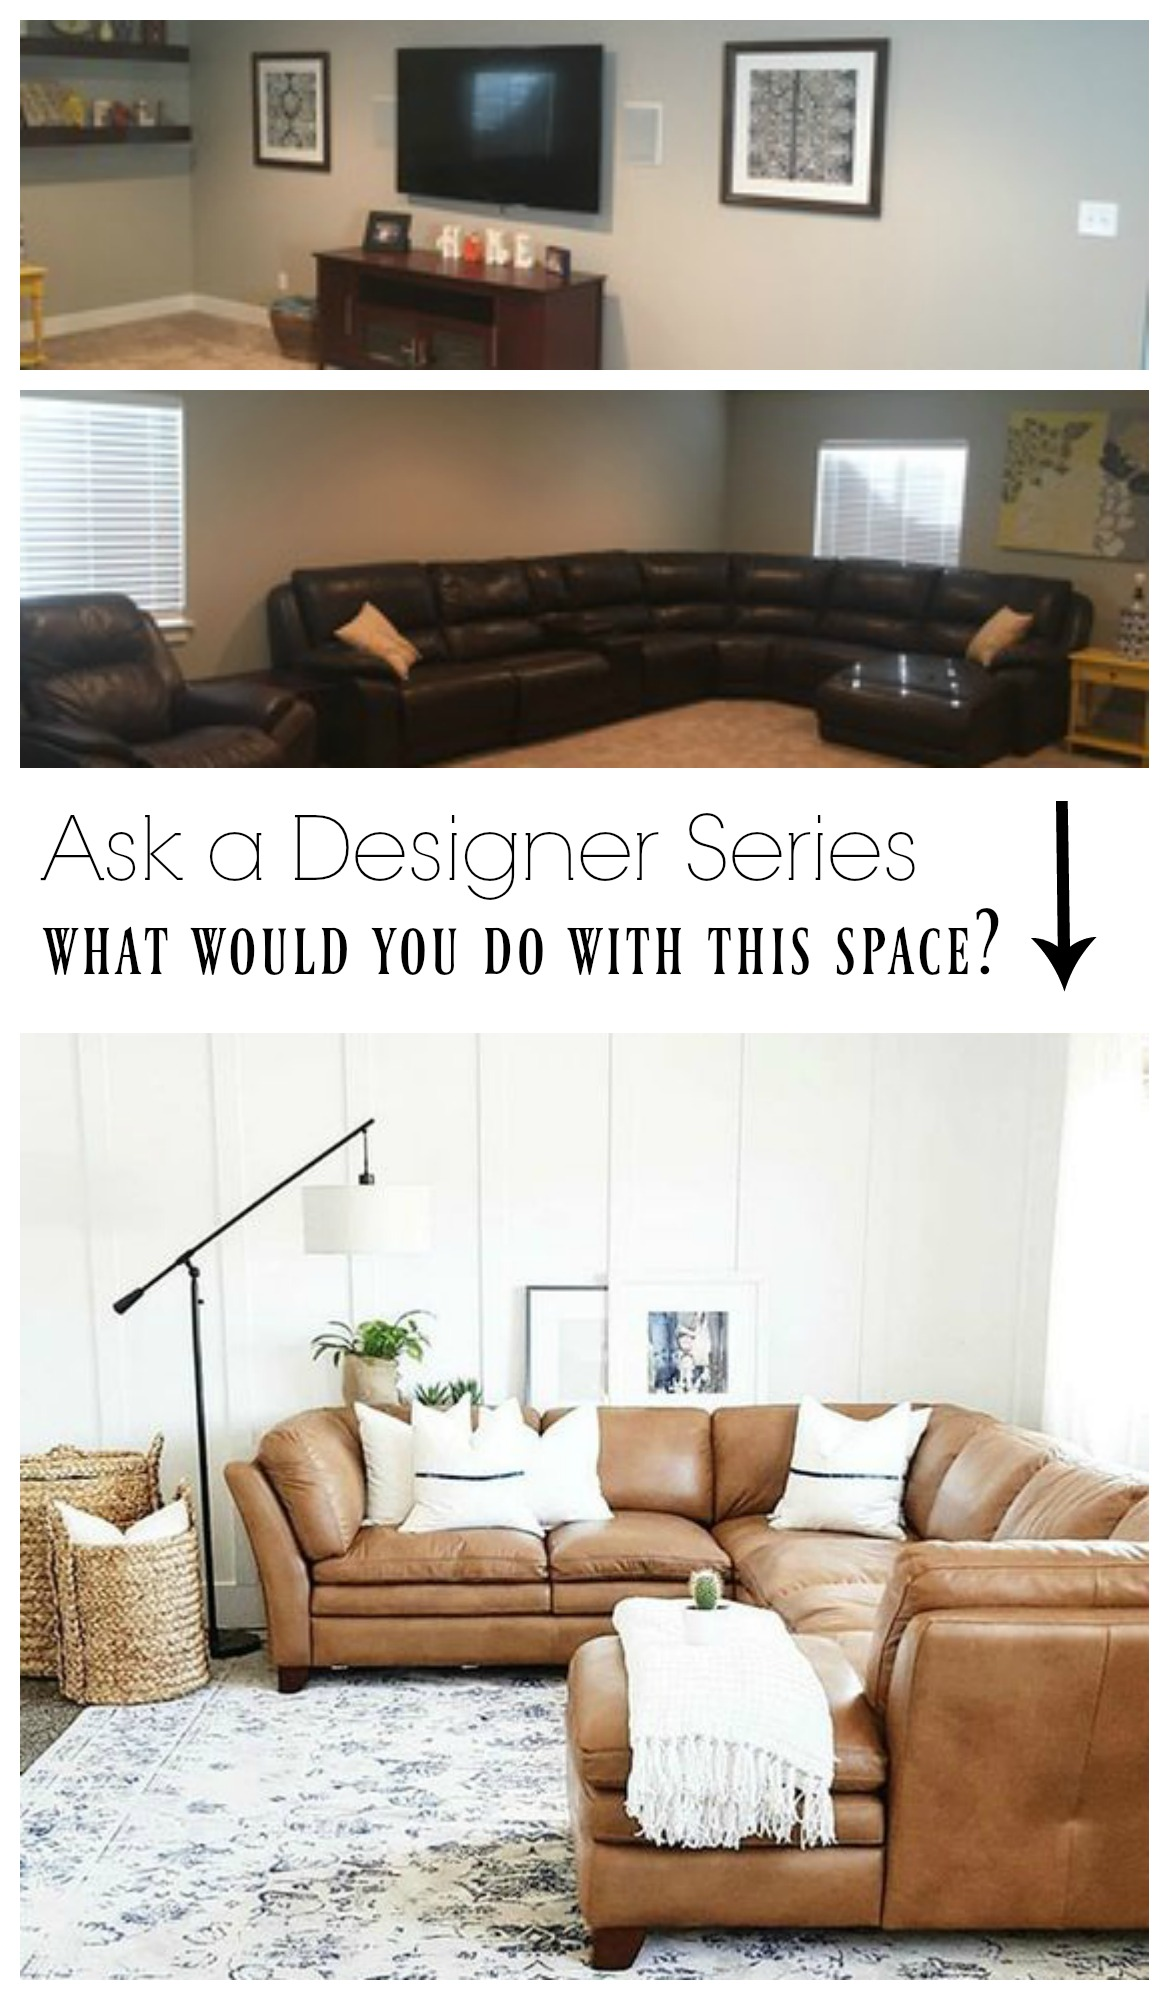 Ask a Designer Series- What would you do wtih this space? 1